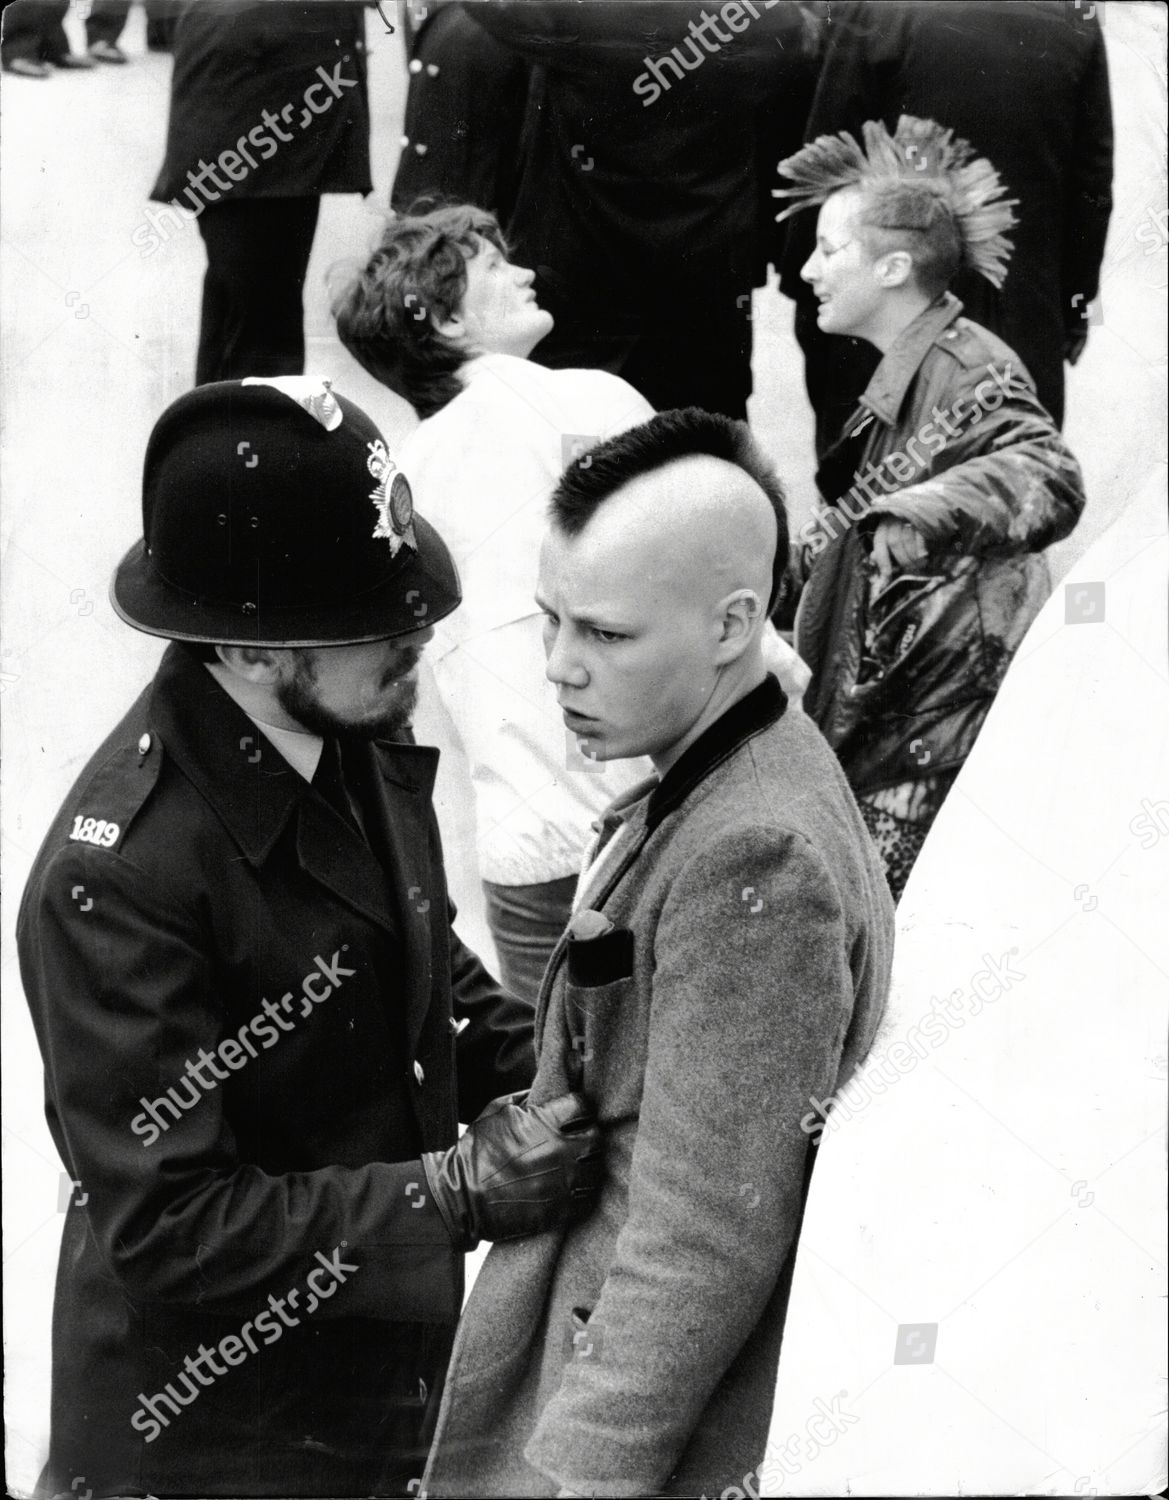 skinhead dating service